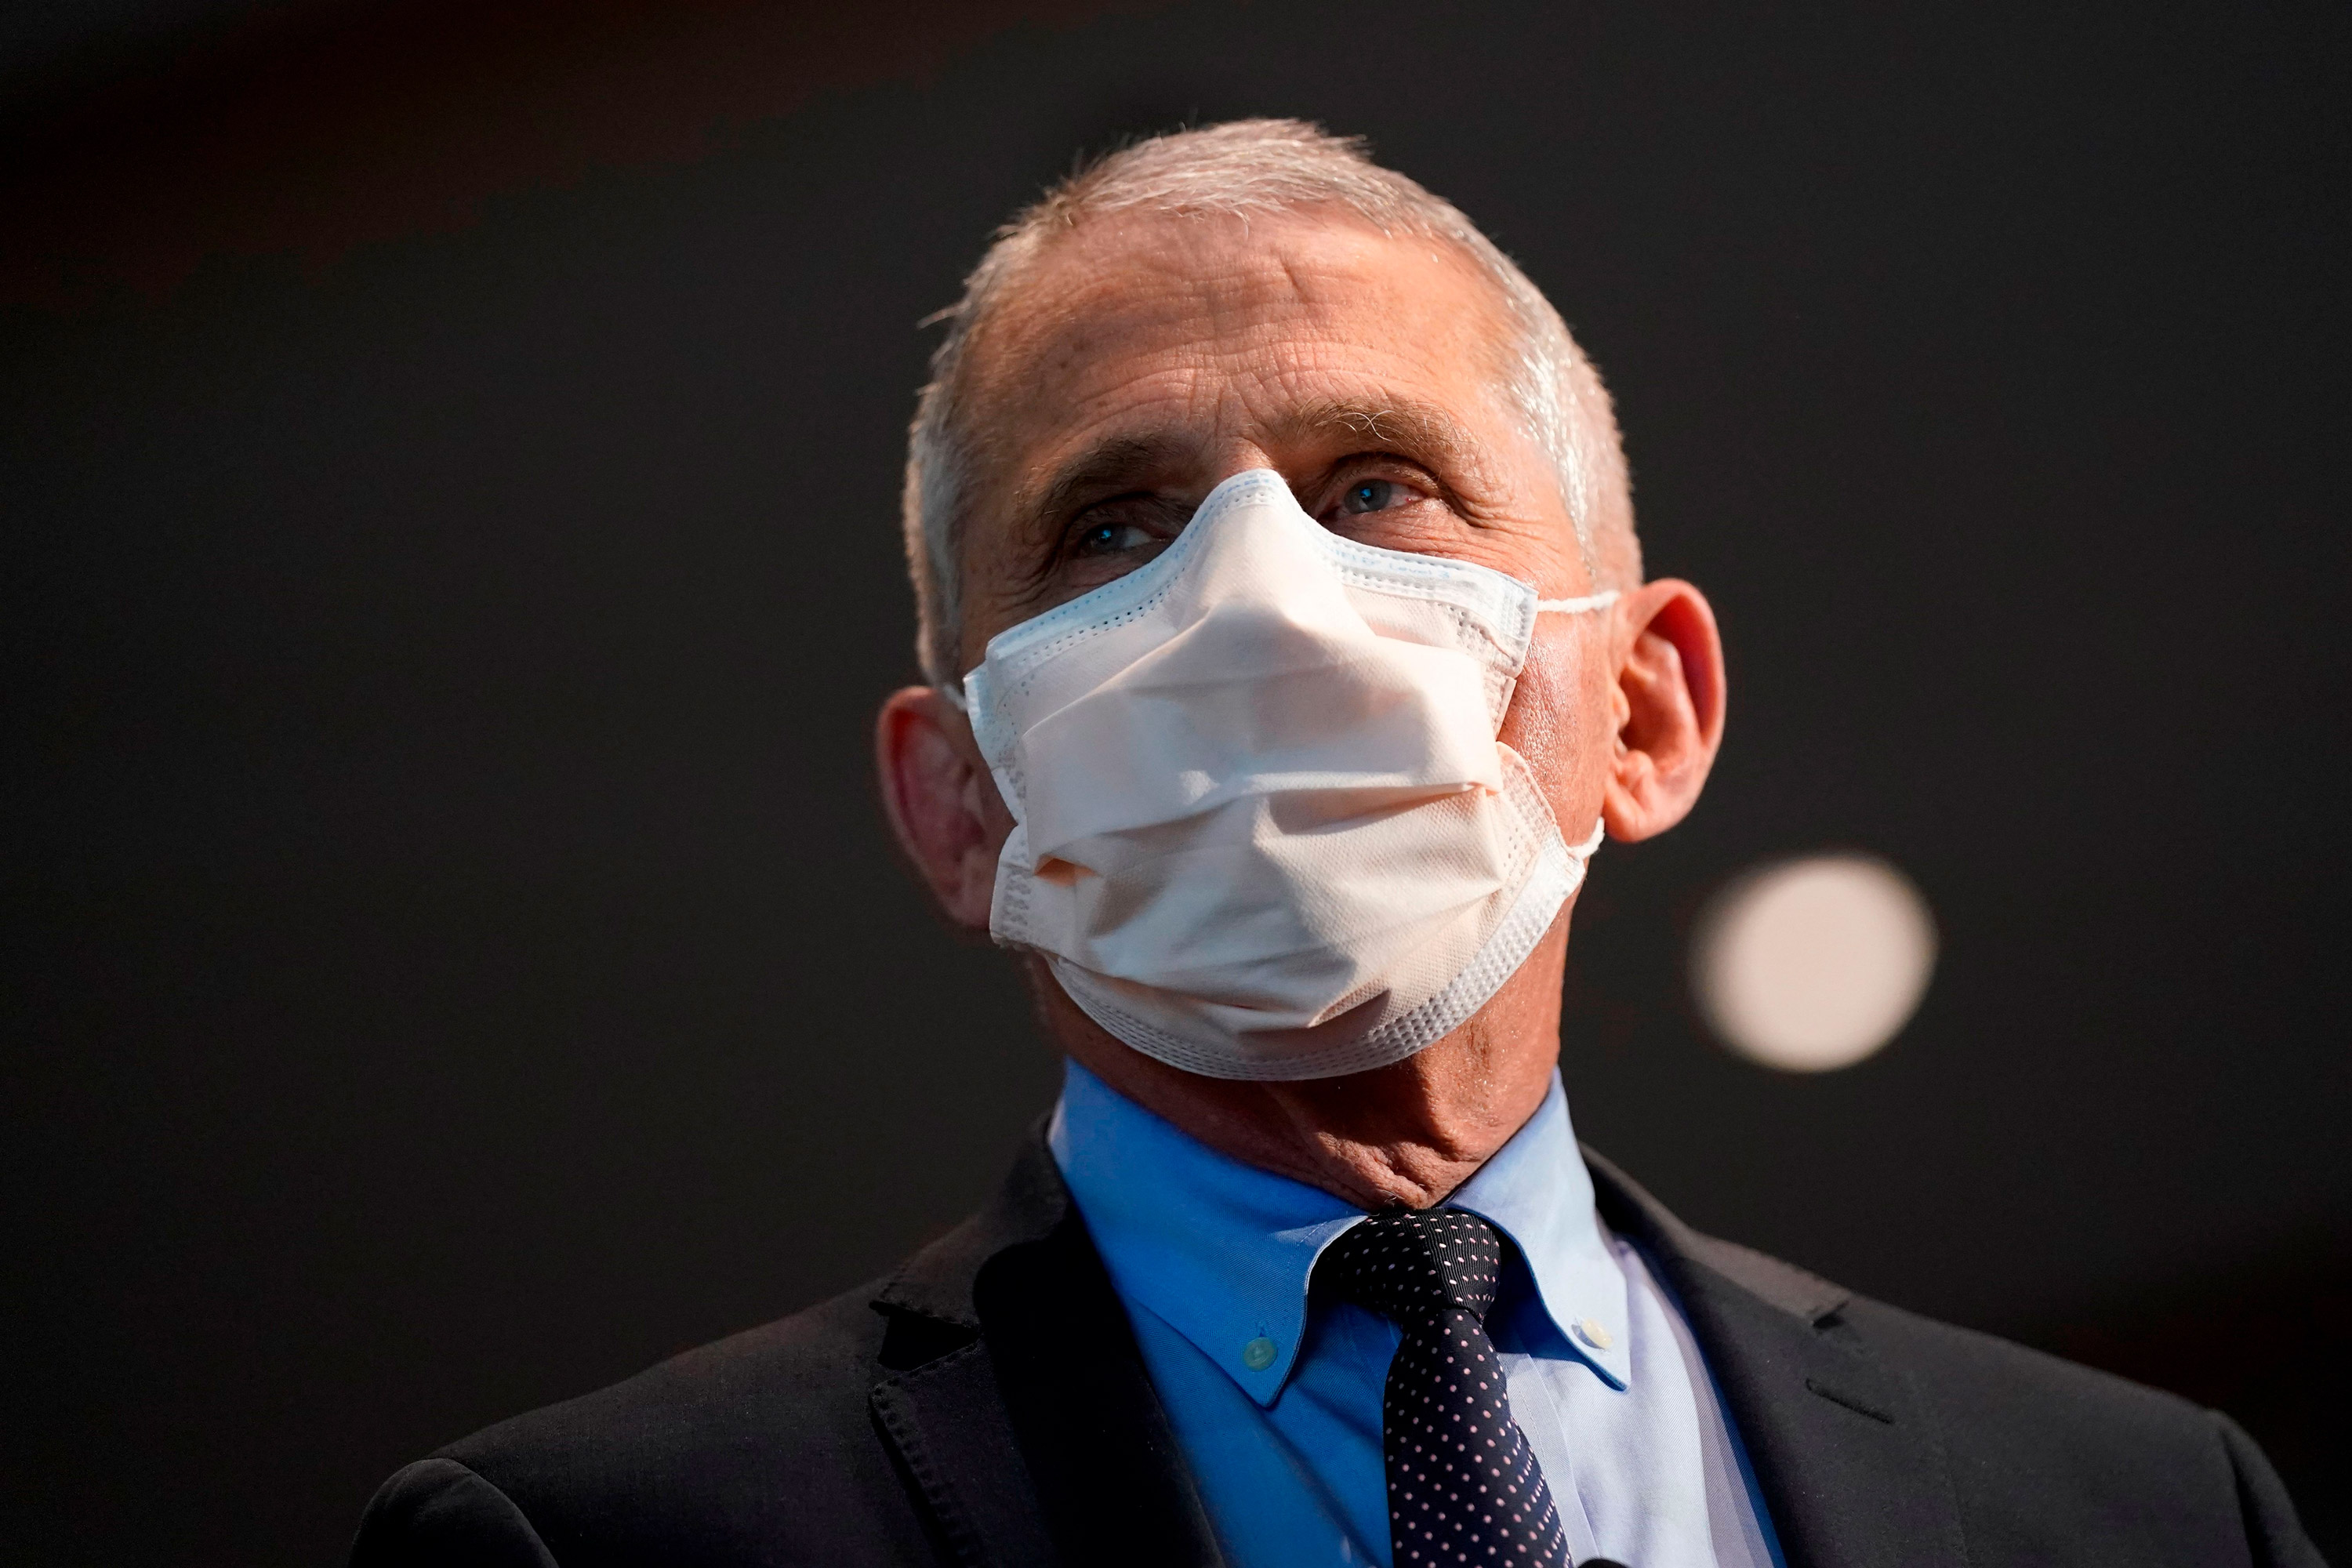 Anthony Fauci speaks at the National Institutes of Health on December 22, 2020, in Bethesda, Maryland.